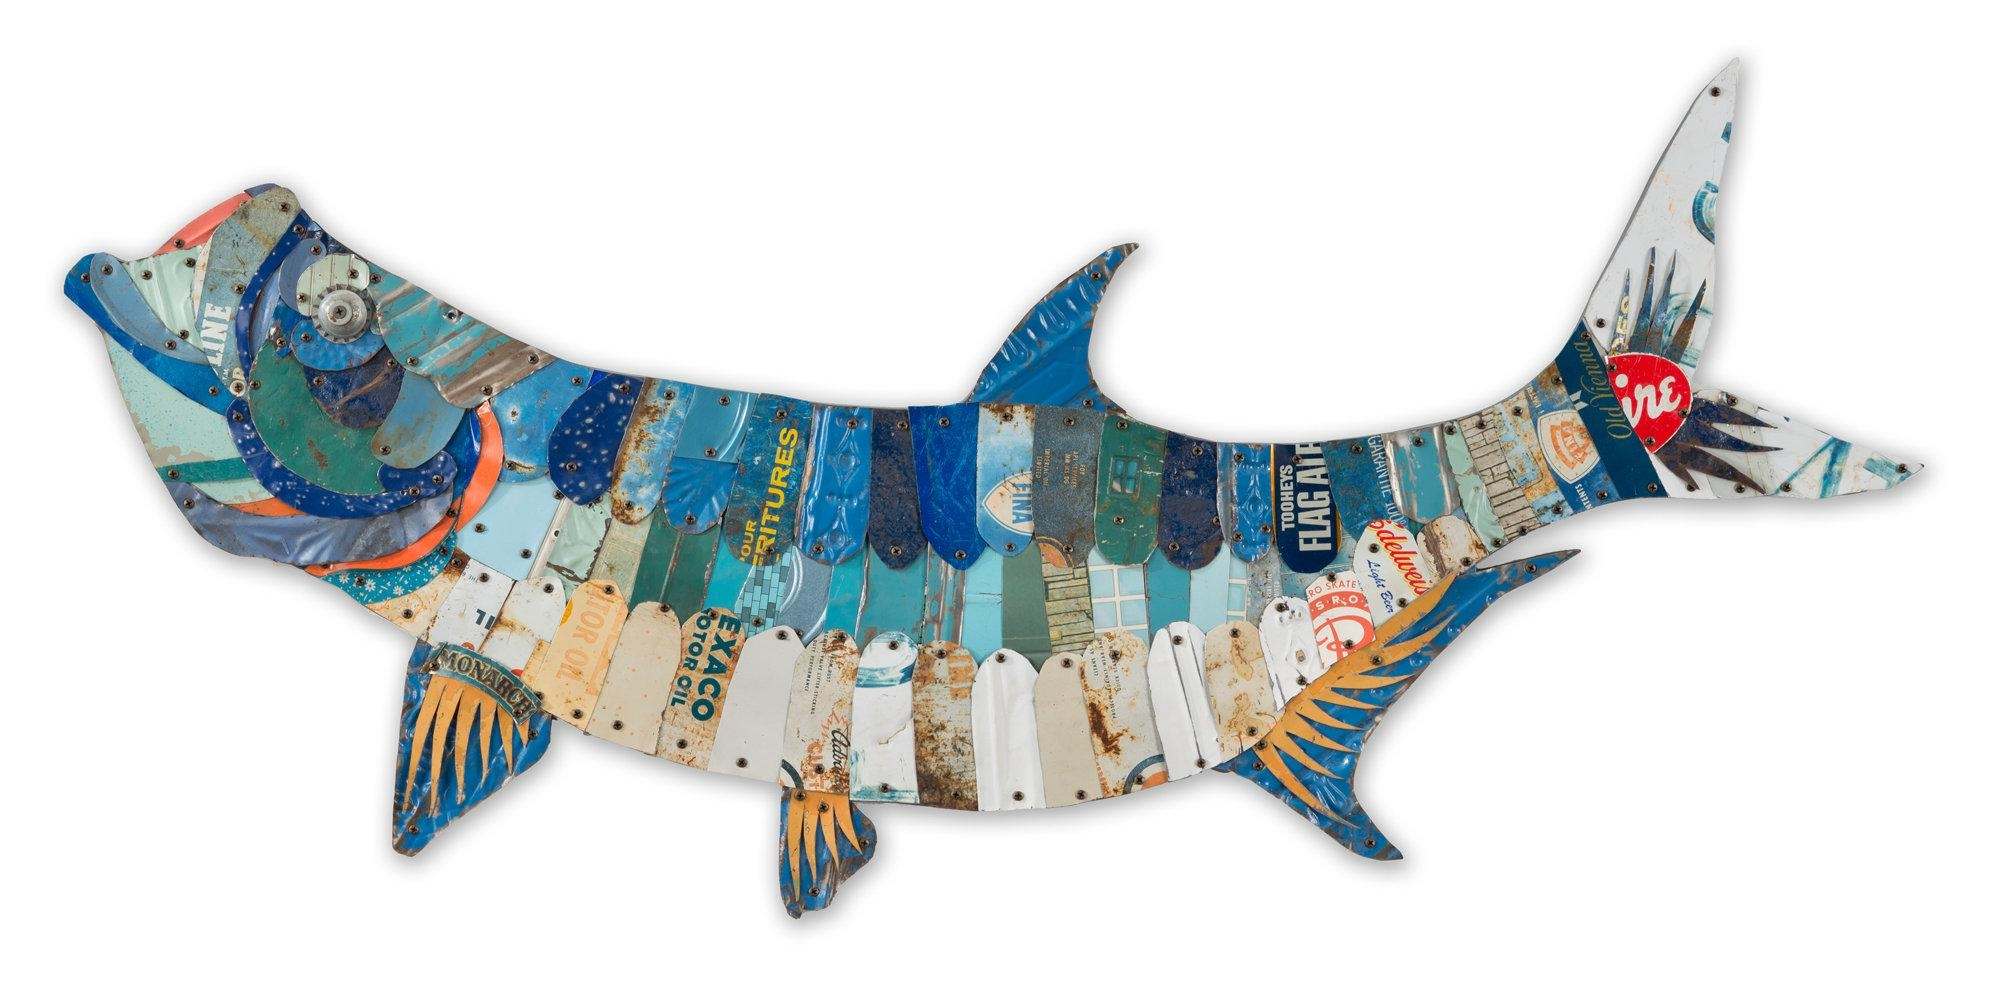 Large Metal Fish Wall Art | Wallartideas With Large Metal Wall Art Sculptures (Image 9 of 20)